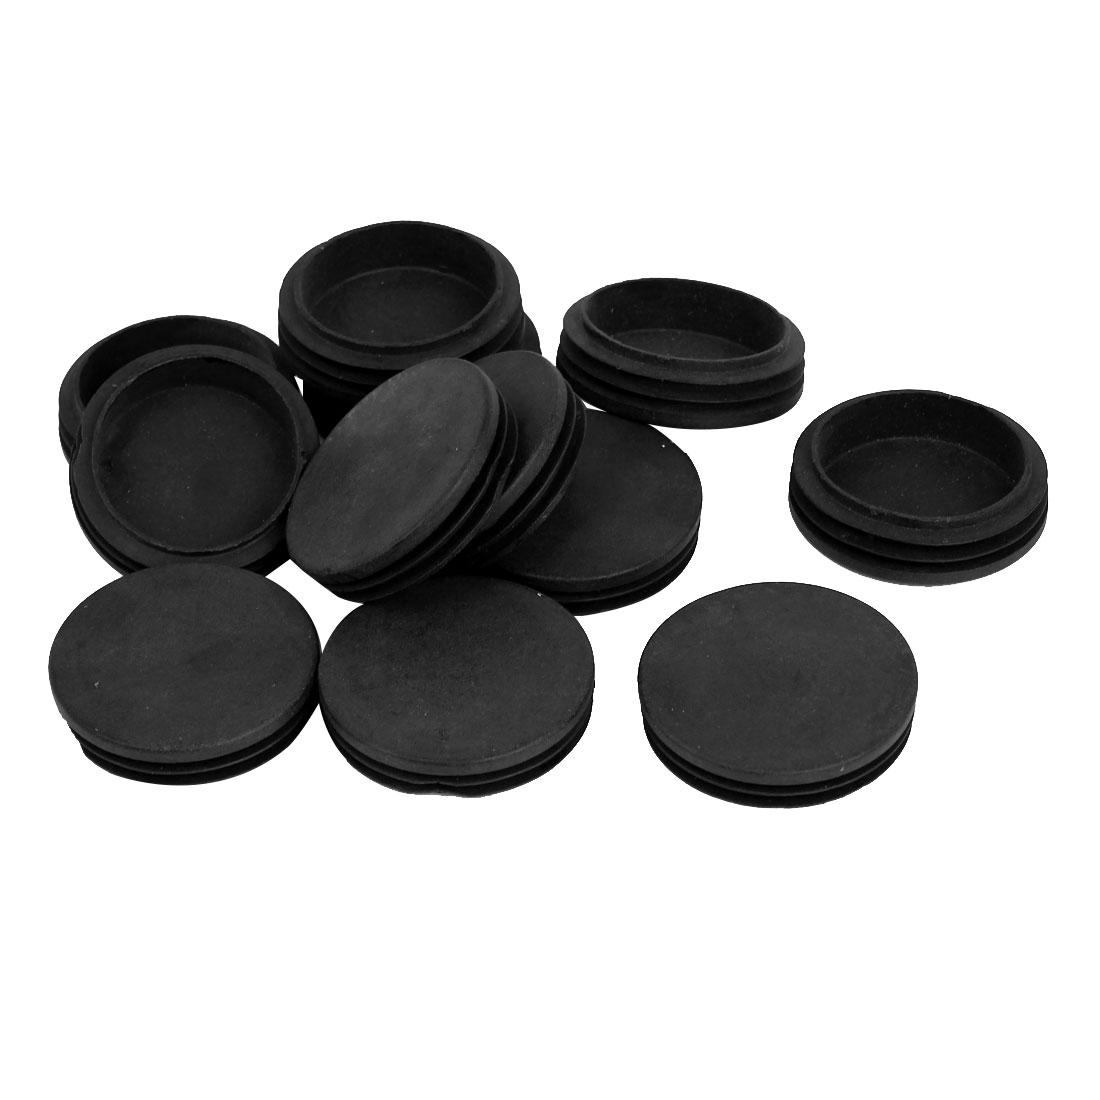 63mm Outer Dia Plastic Round Tubing Tube Insert Blanking End Caps Black 12Pcs